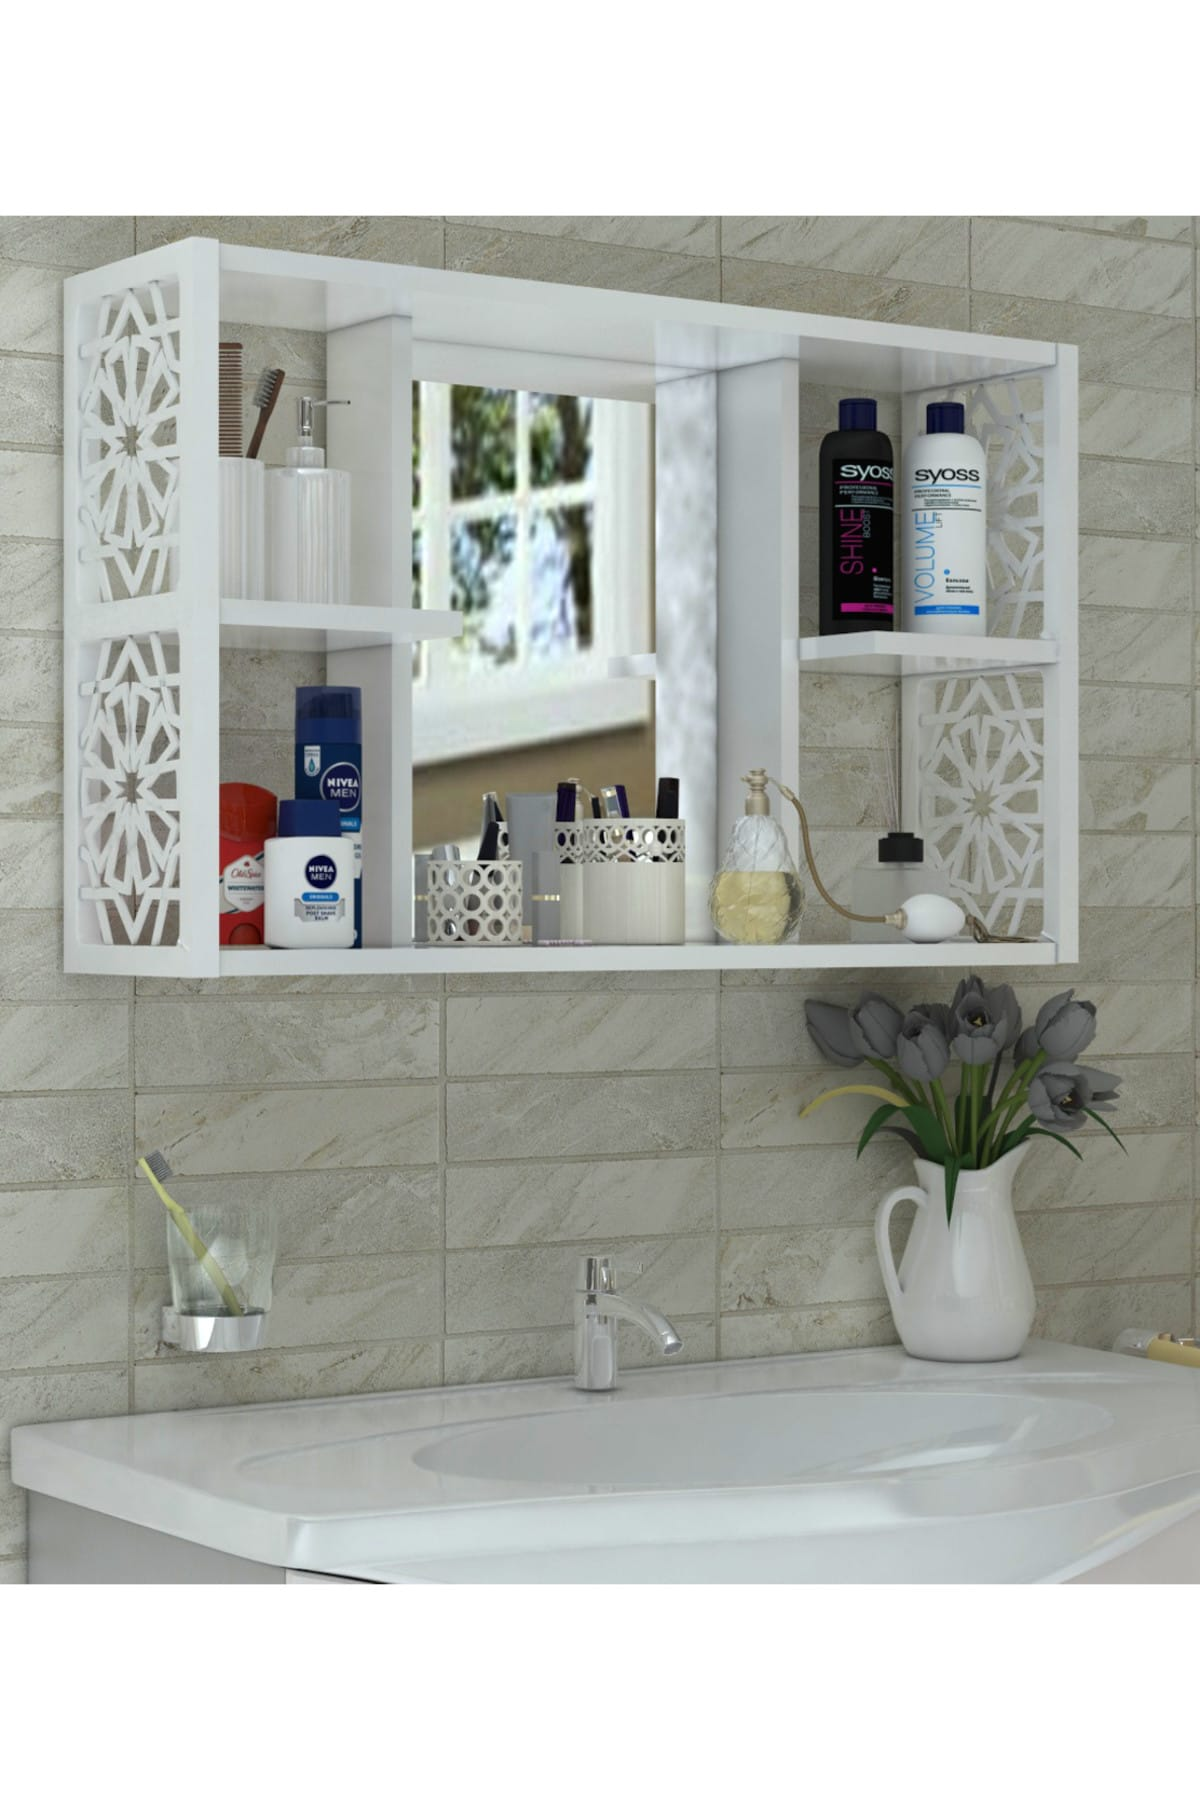 White Special Design Bathroom Wall Cabinet Mirrored Modern A+Quality MADE In TURKEY Sturdy Durable Luxurious Patterned Accessory